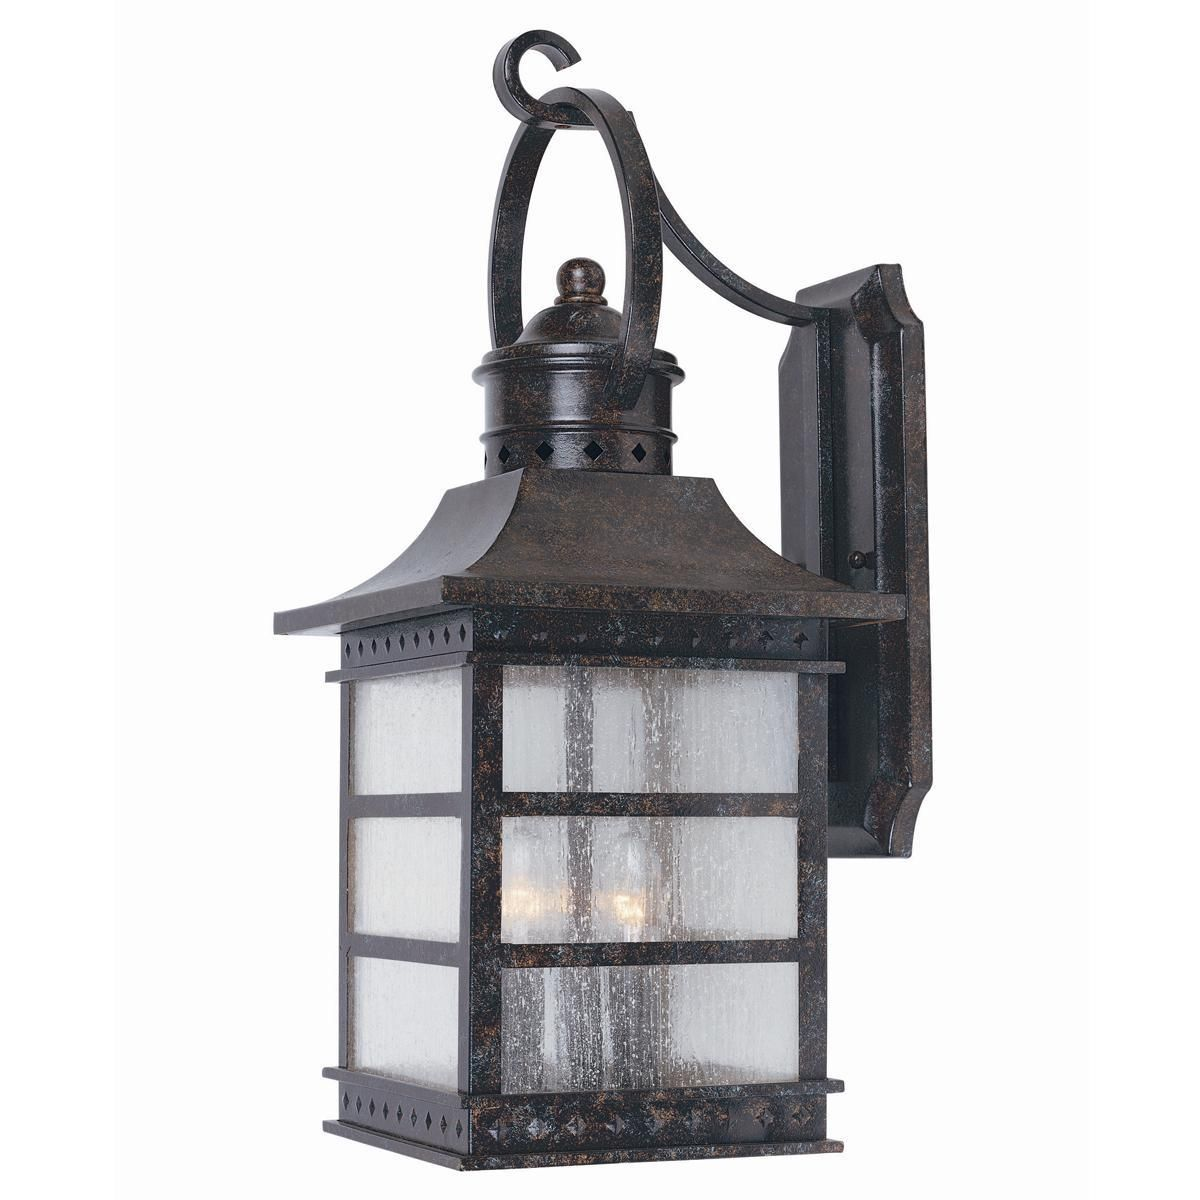 Large Rustic Finish Lantern Wall Mounted Light Sconce: Carriage House Outdoor Light - Large